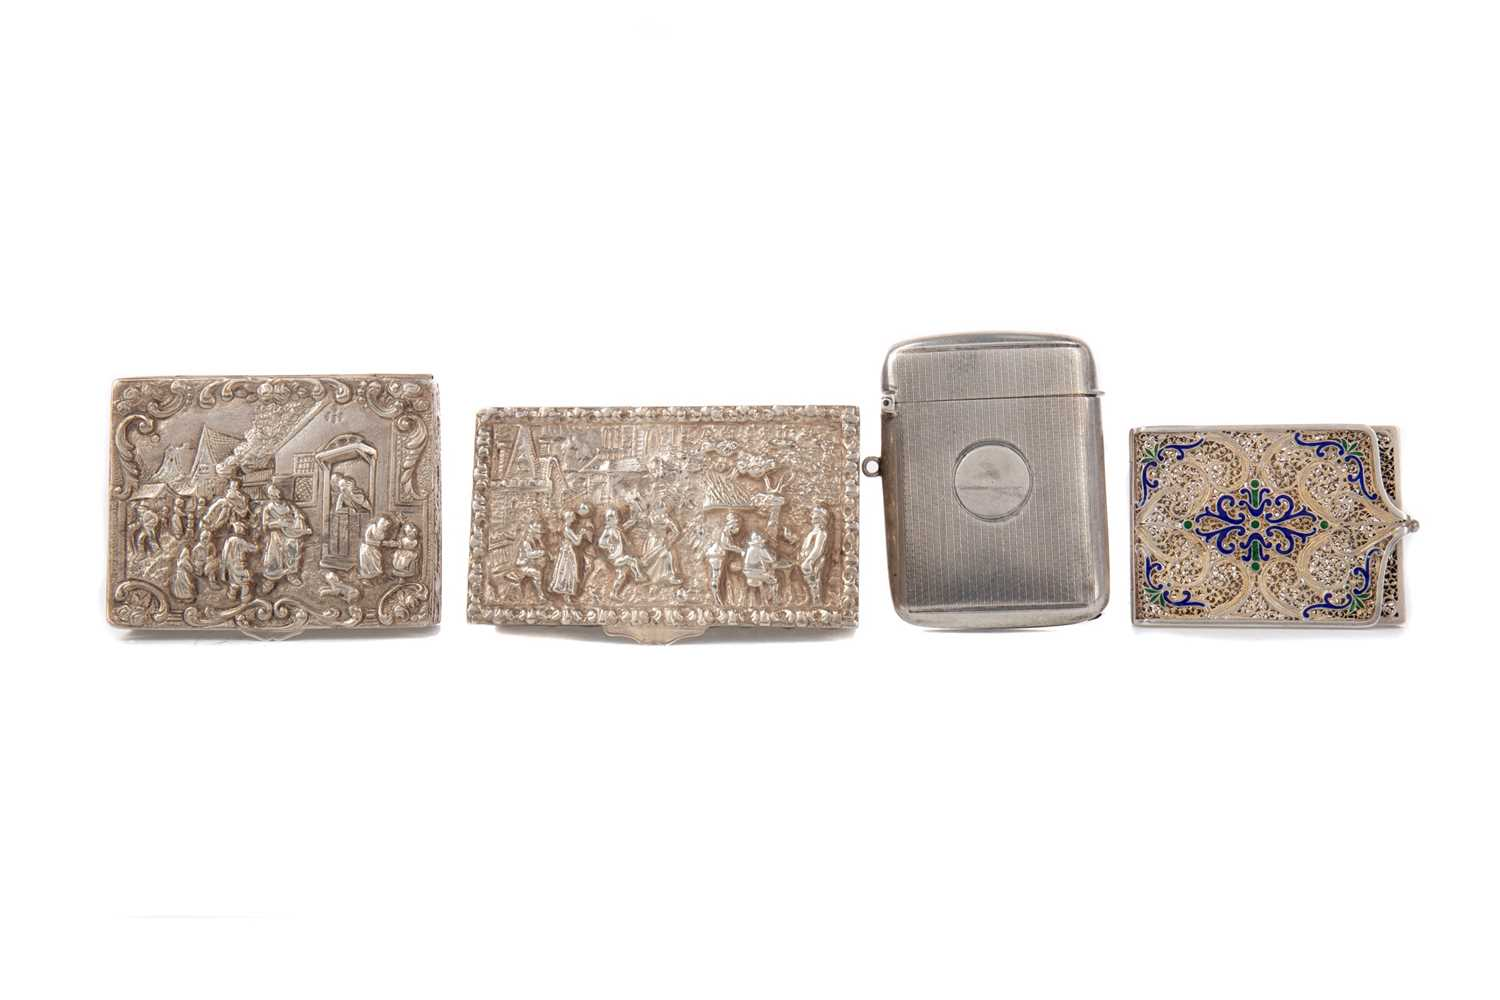 Lot 471 - TWO CONTINENTAL SILVER BOXES, ALONG WITH A VESTA AND A FILIGREE CASE